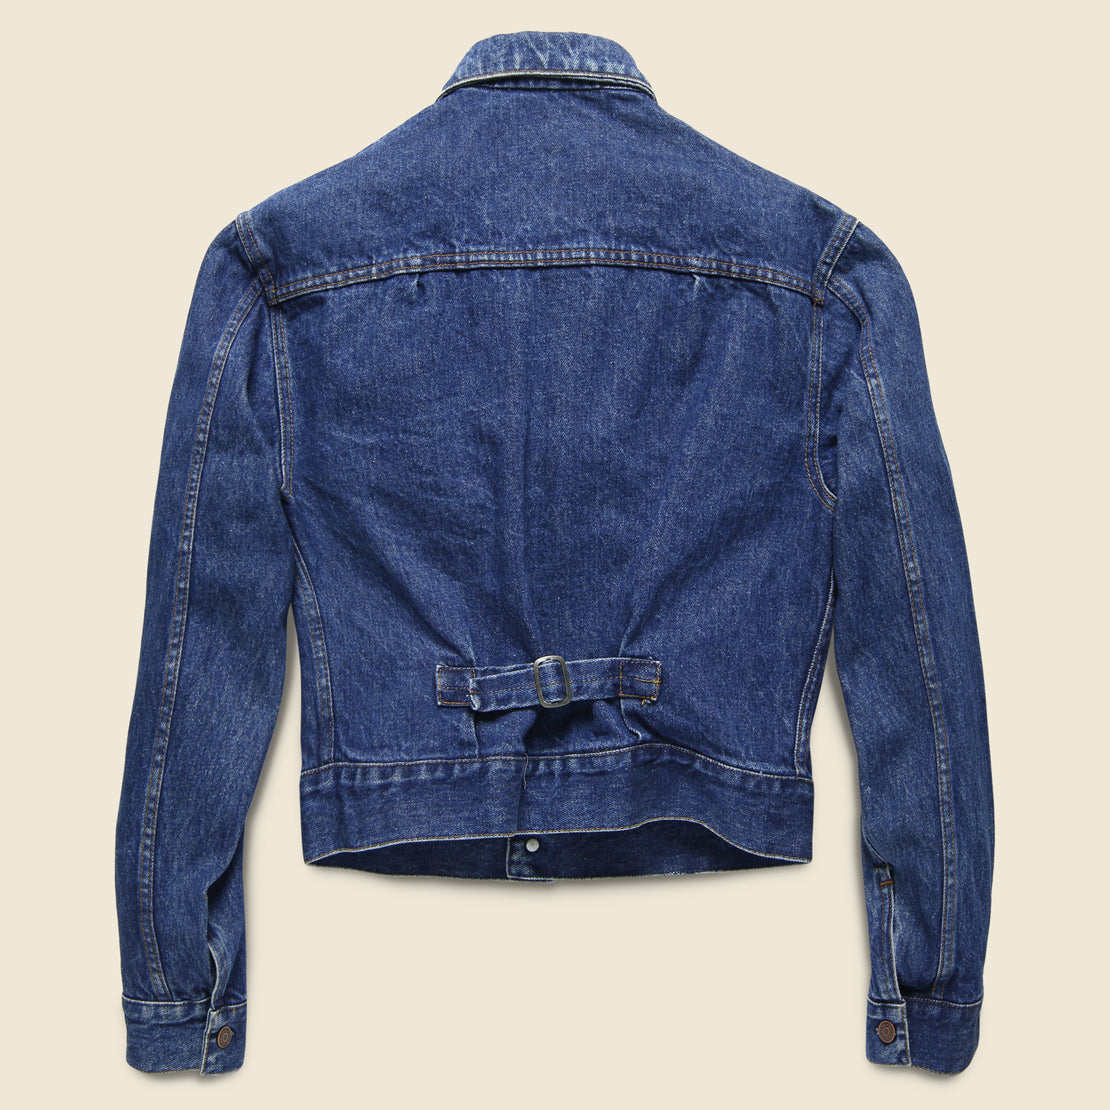 Ralph Lauren Buckle Back Denim Jacket - Indigo